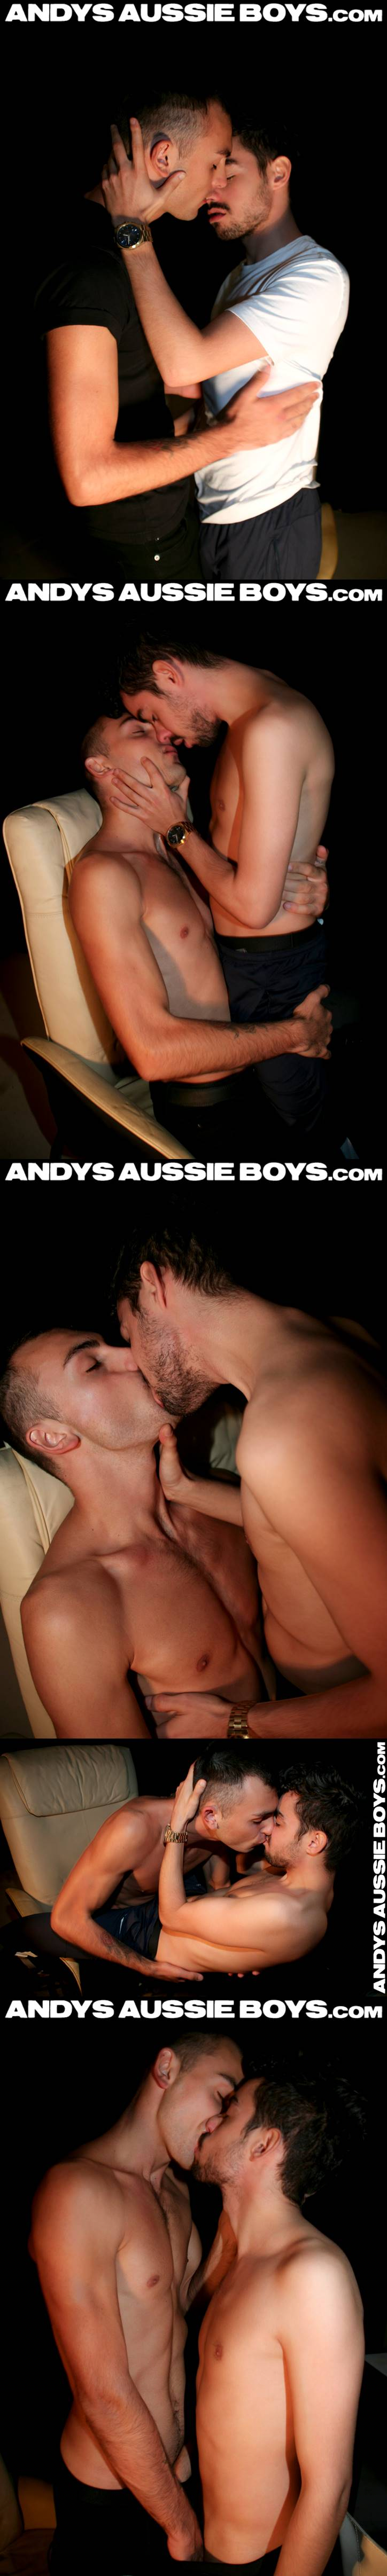 Andy's Aussie Boys: Ryan and Peter